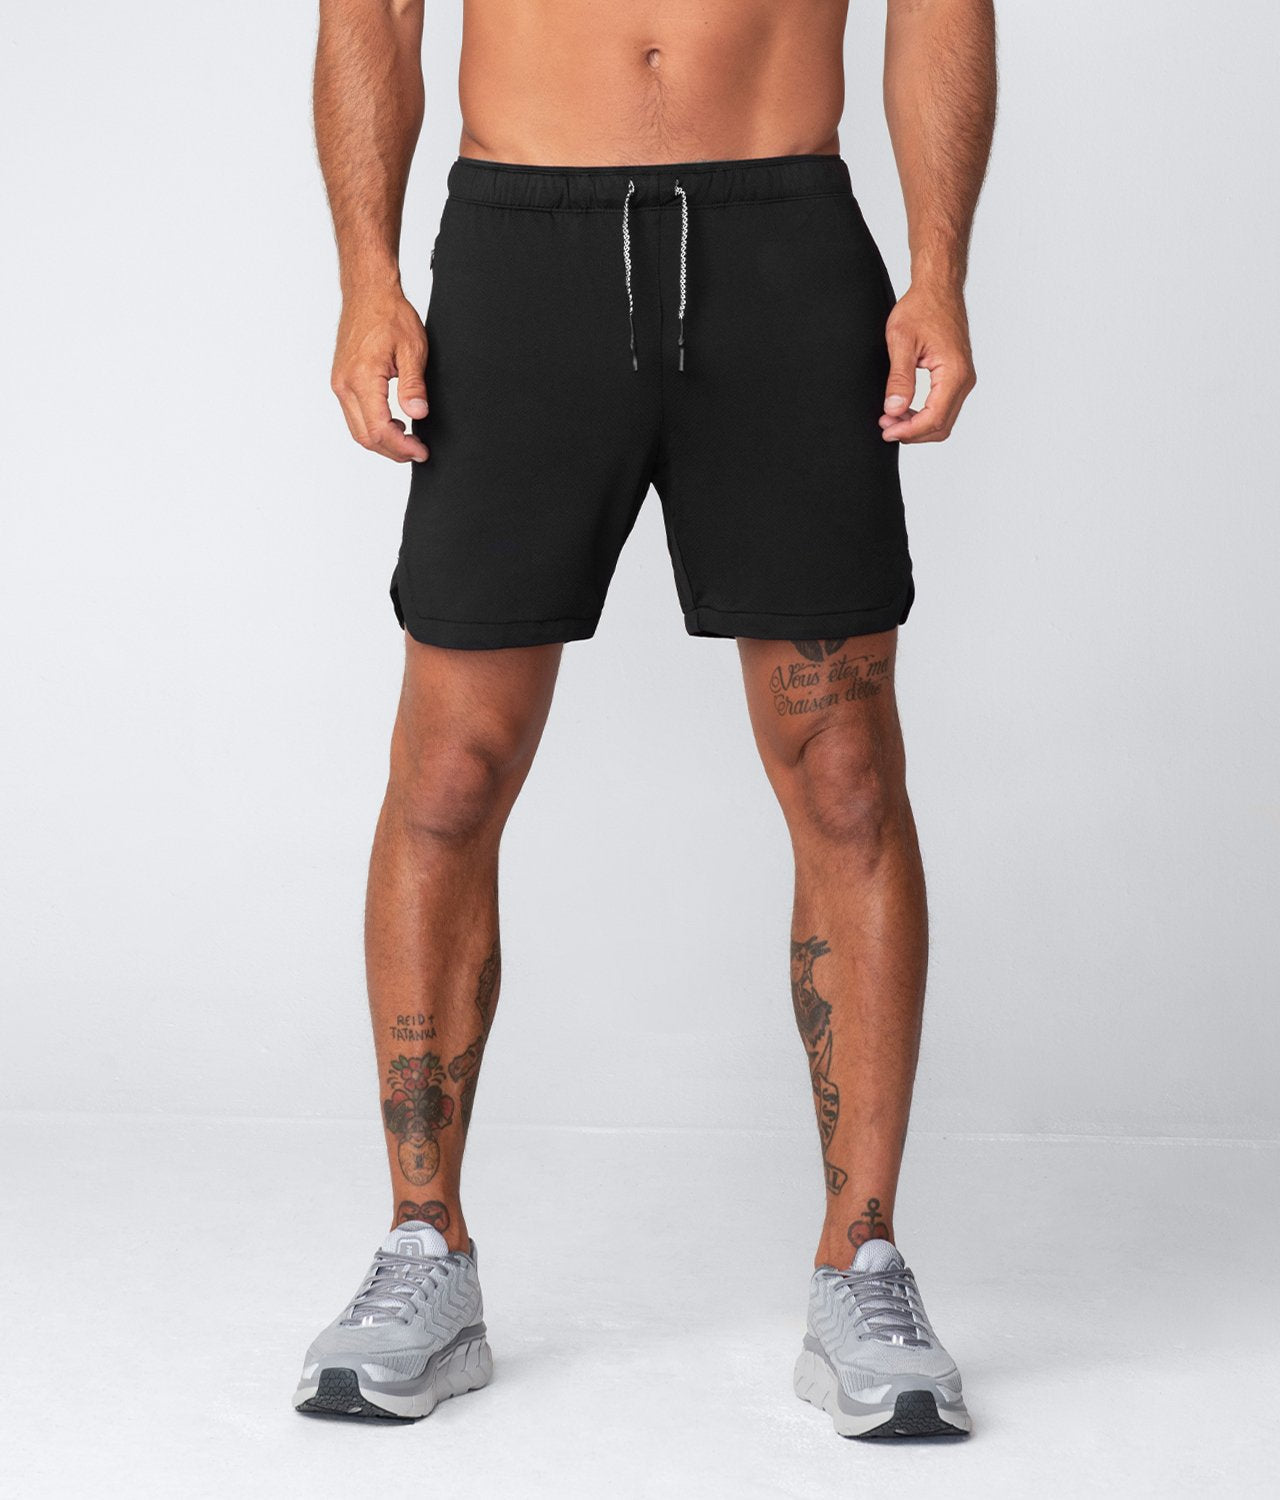 "Born Tough United Kingdom Air Pro™ 7"" Double layered Ink Black Men's Gym Workout Shorts with Liner"